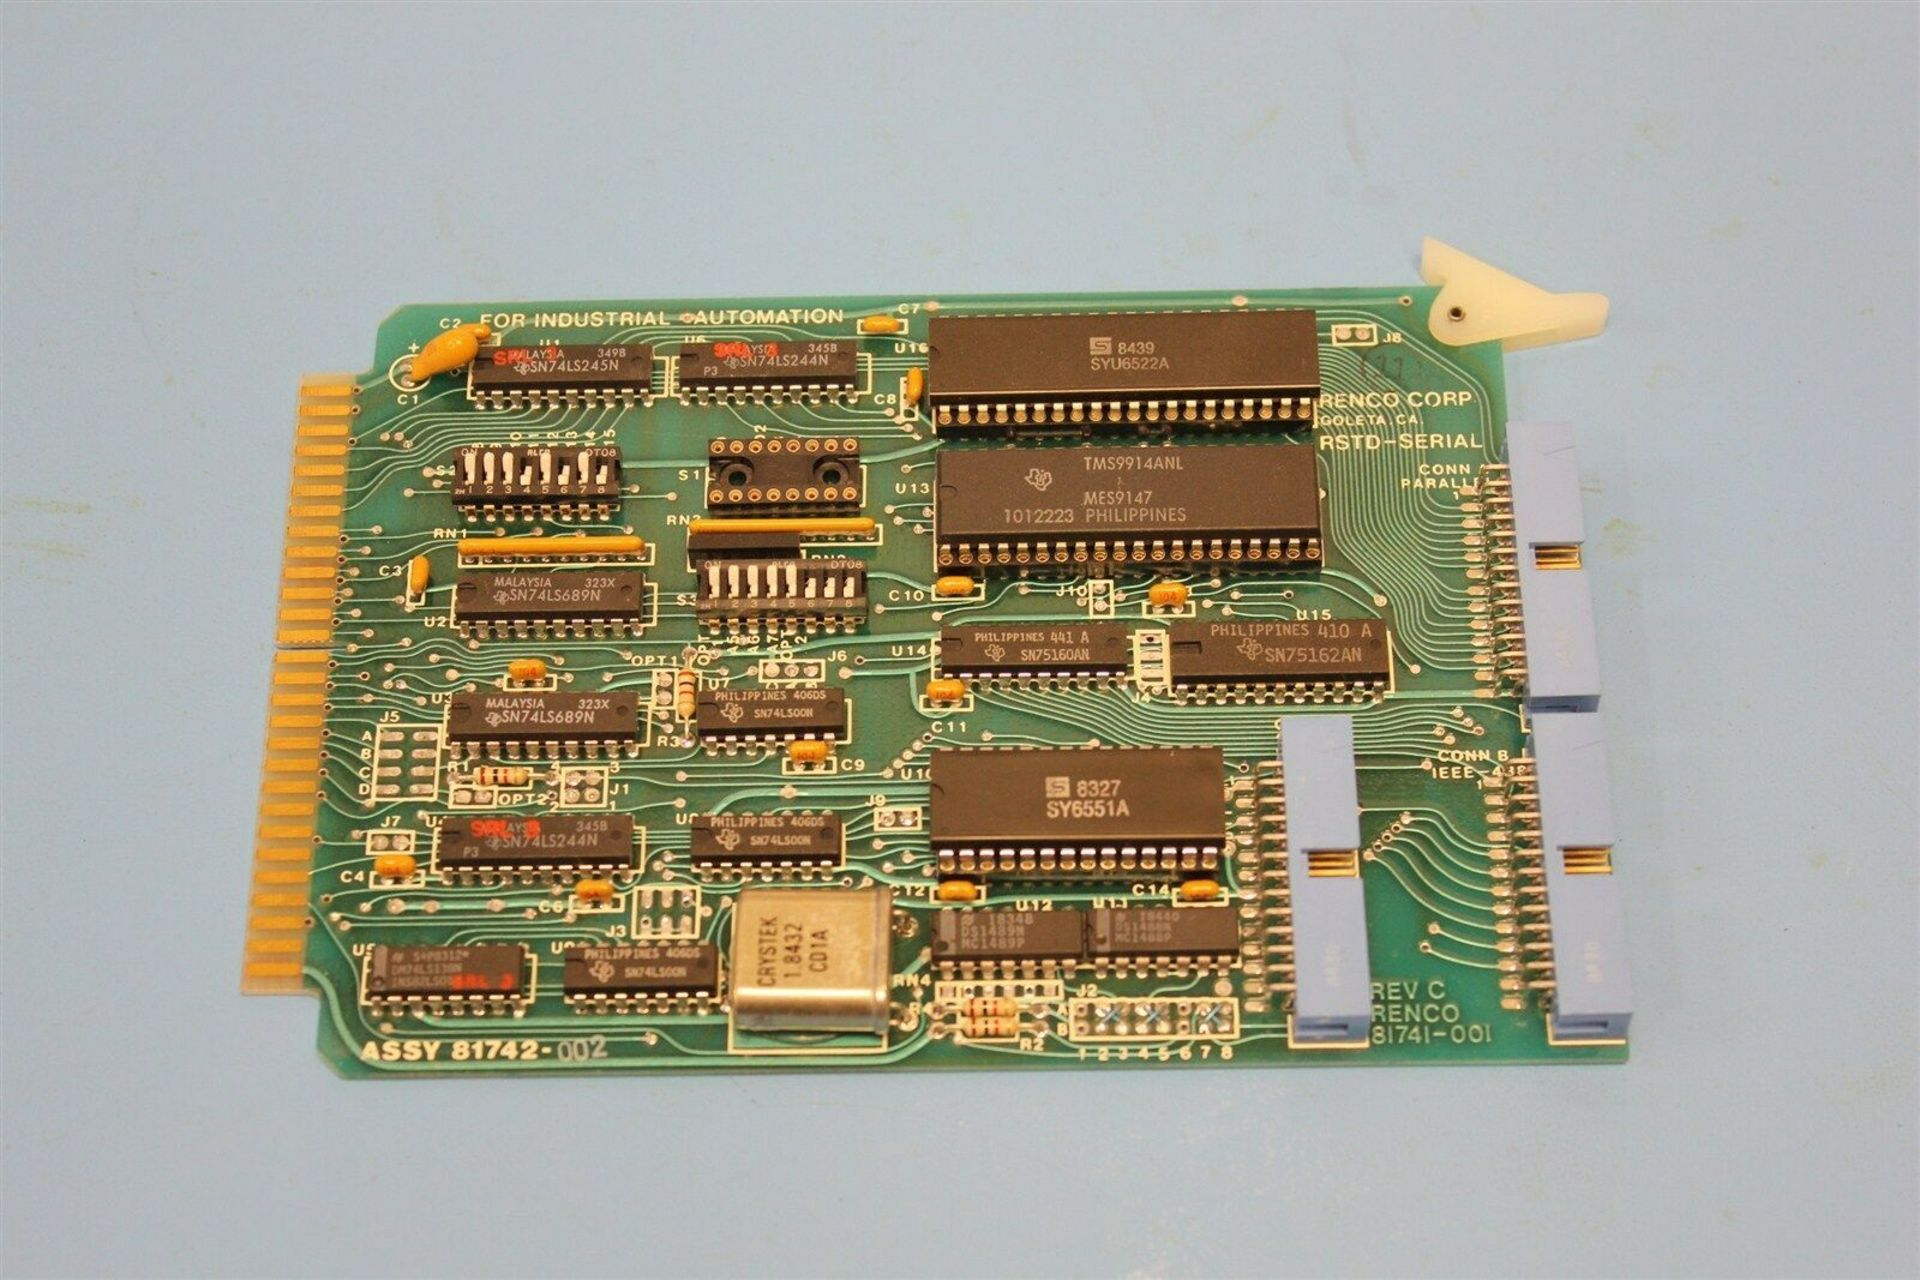 RENCO SERIAL INTERFACE MOTION CONTROL BOARD